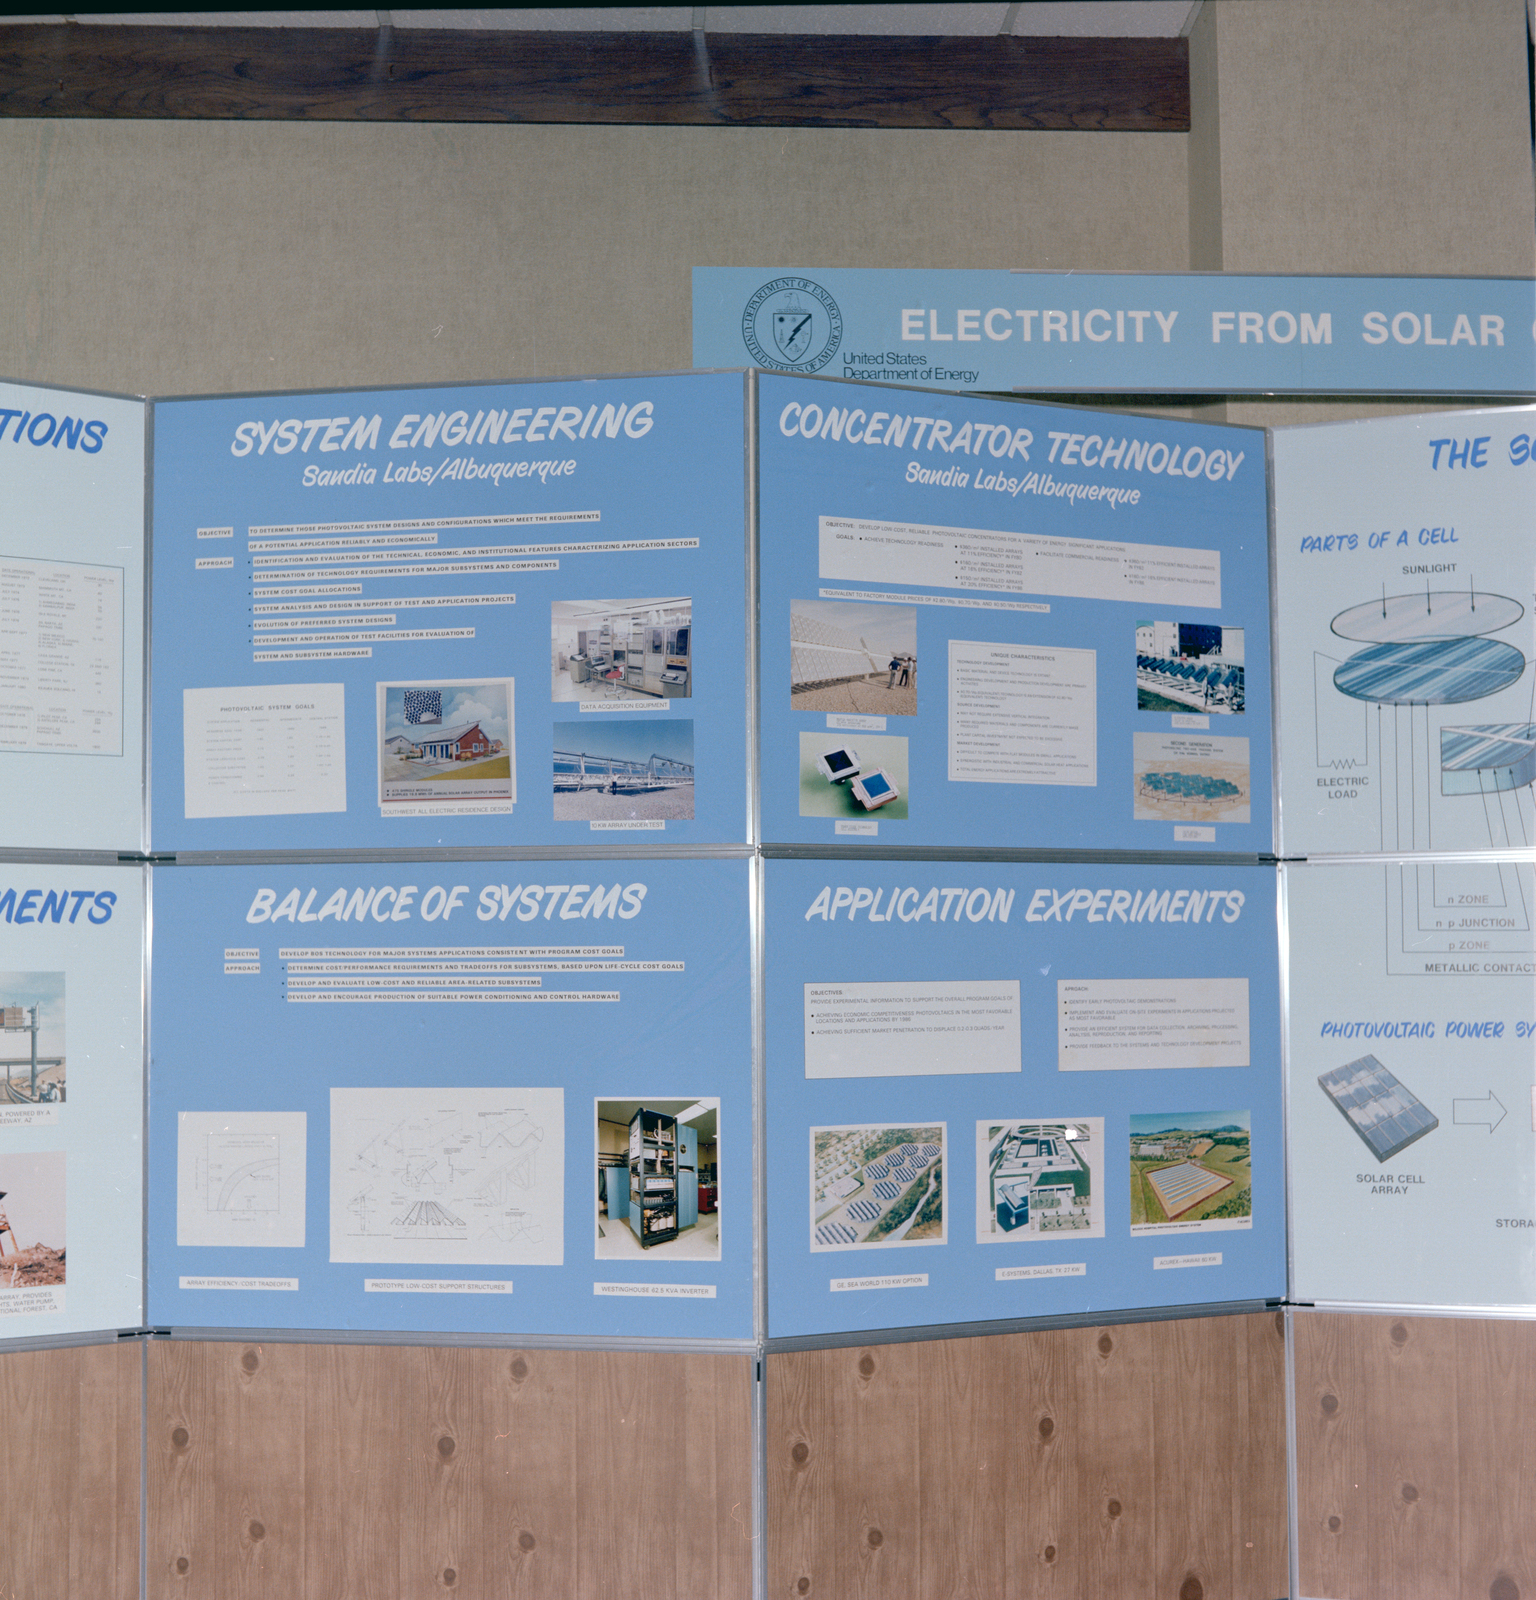 NATIONAL CONFERENCE ON PHOTOVOLTAIC FOR ELECTRICALLY POWERED PRODUCTS